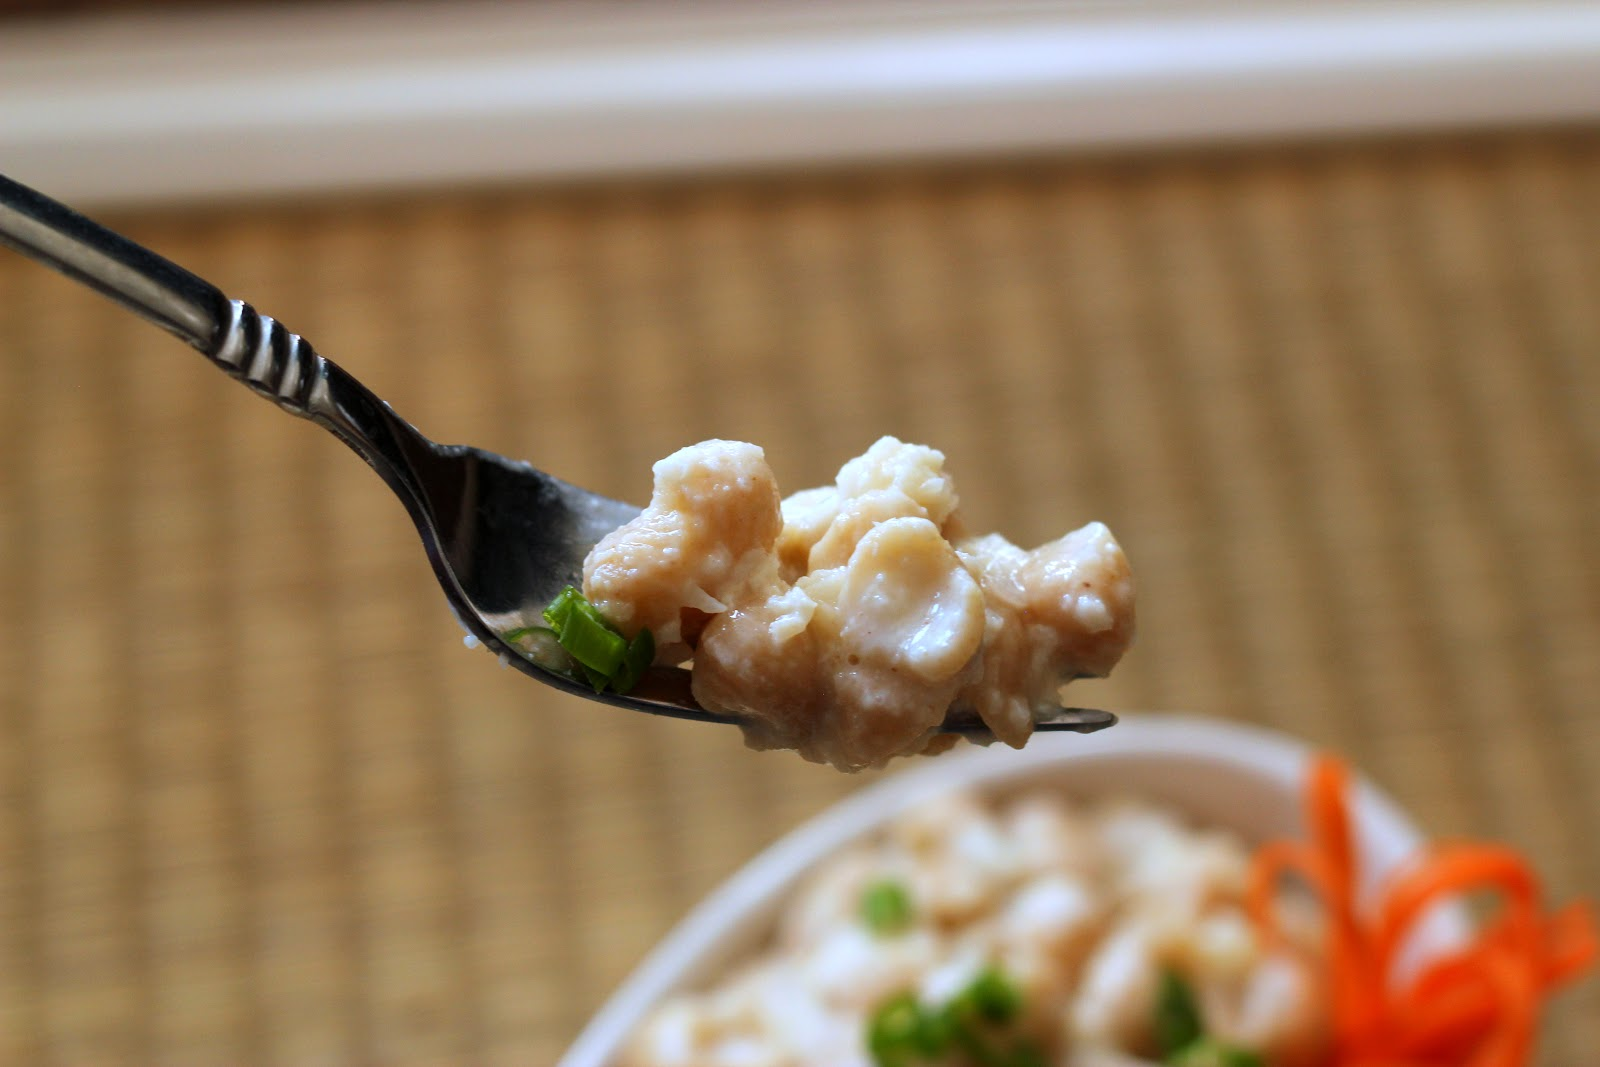 Enjoy this mac and cheese recipe with your family this Lent. It is full of fiber and veggies!